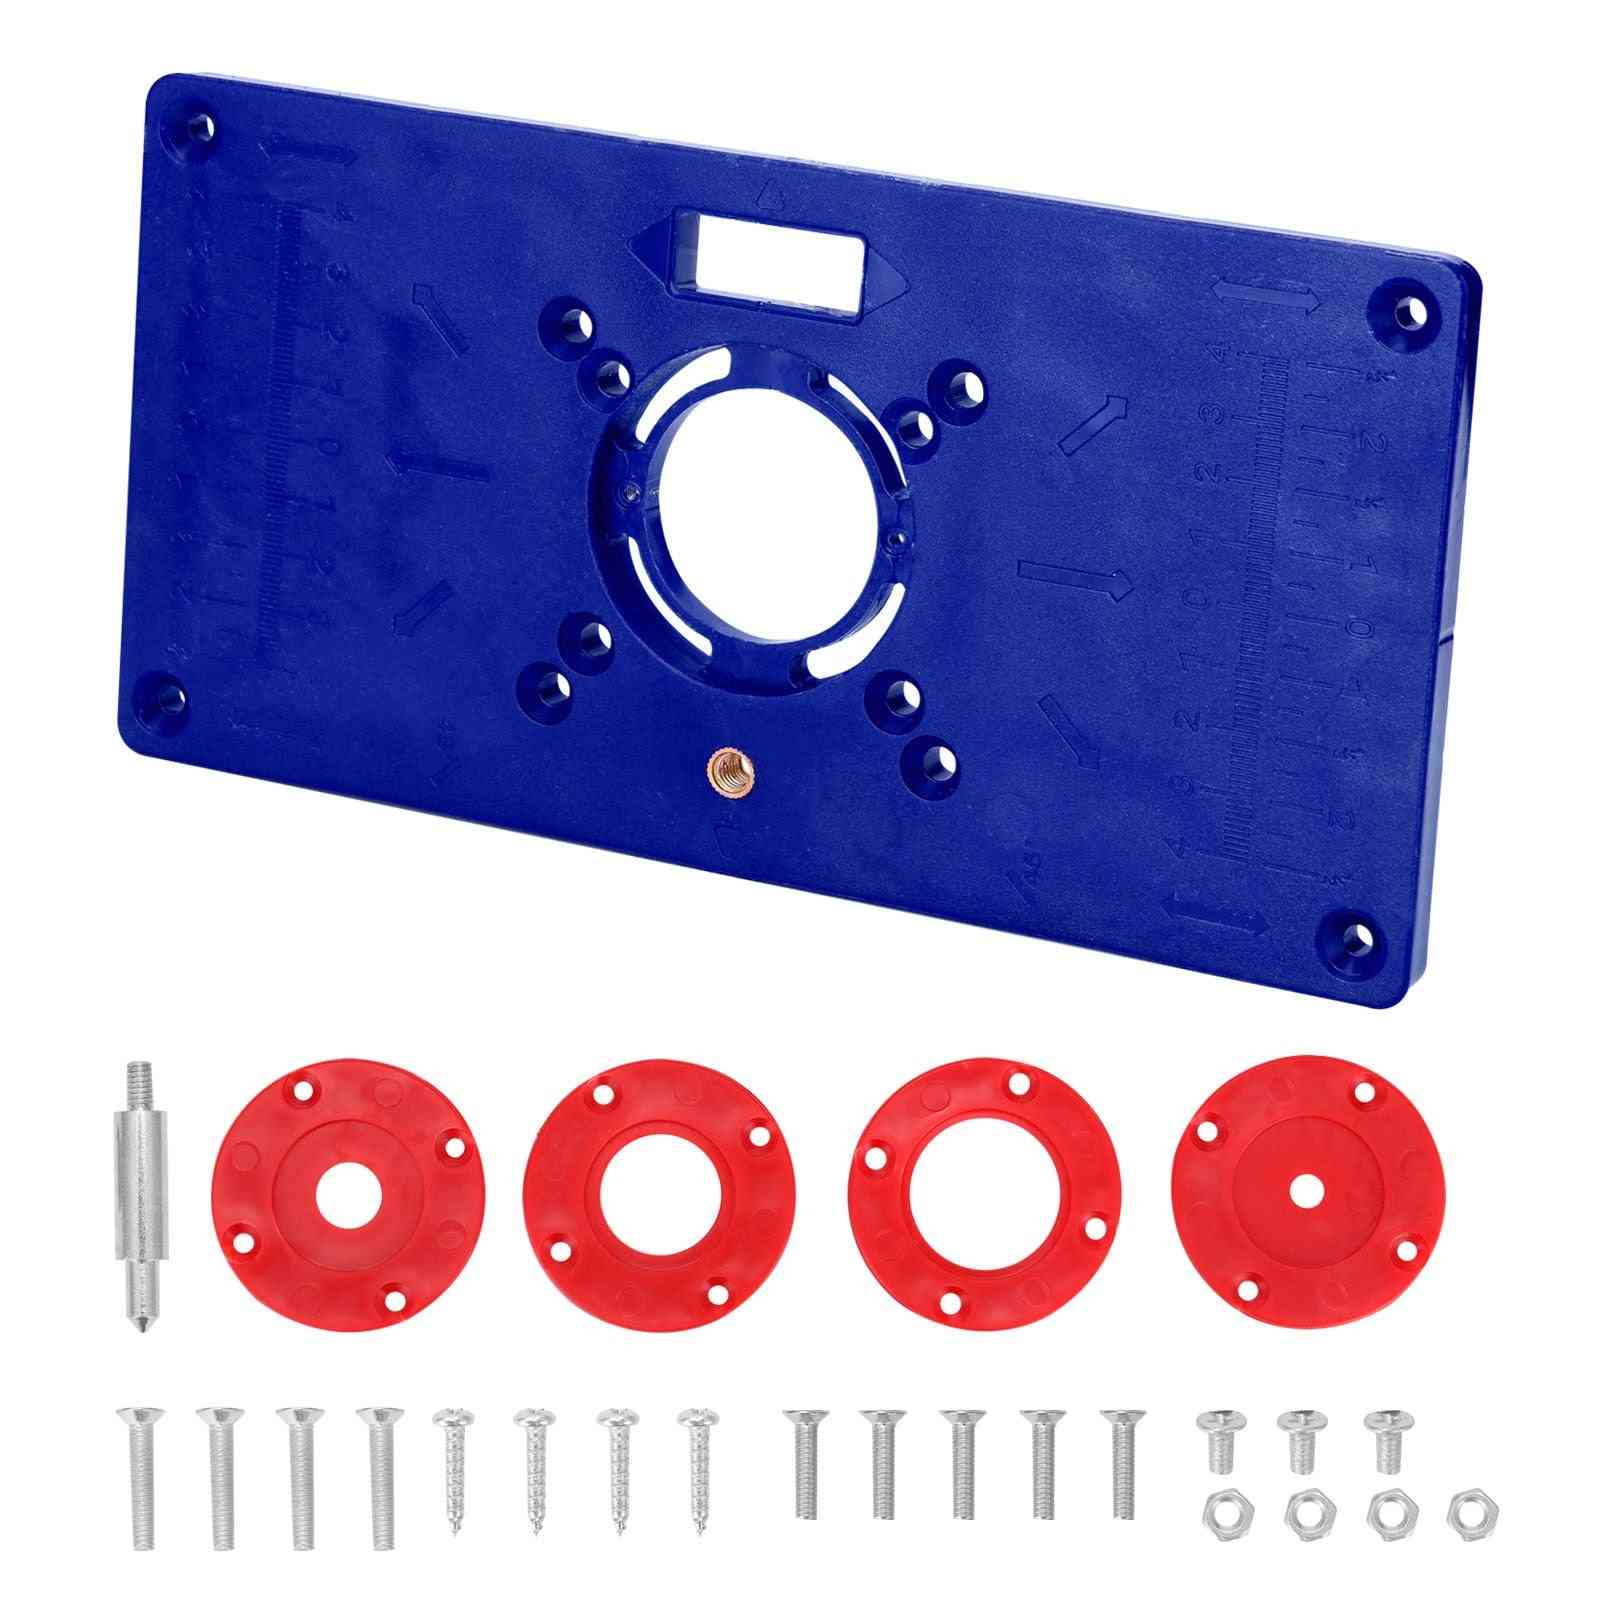 Multifunctional Router Table Plate With 4 Rings